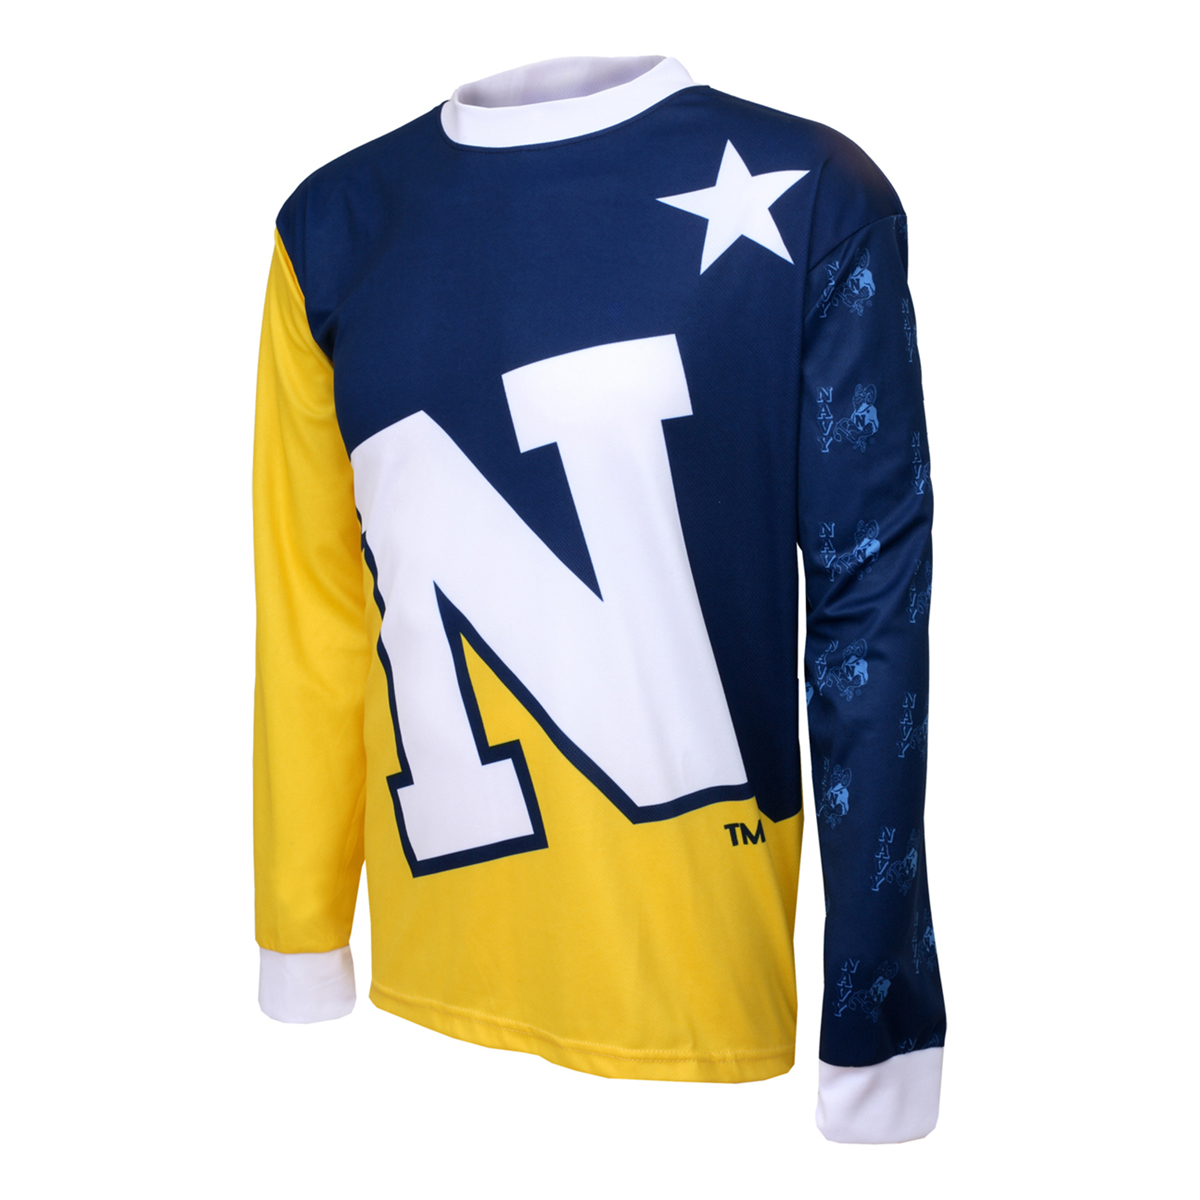 Adrenaline Promotions United States Naval Academy Long Sleeve Mountain Bike Jersey